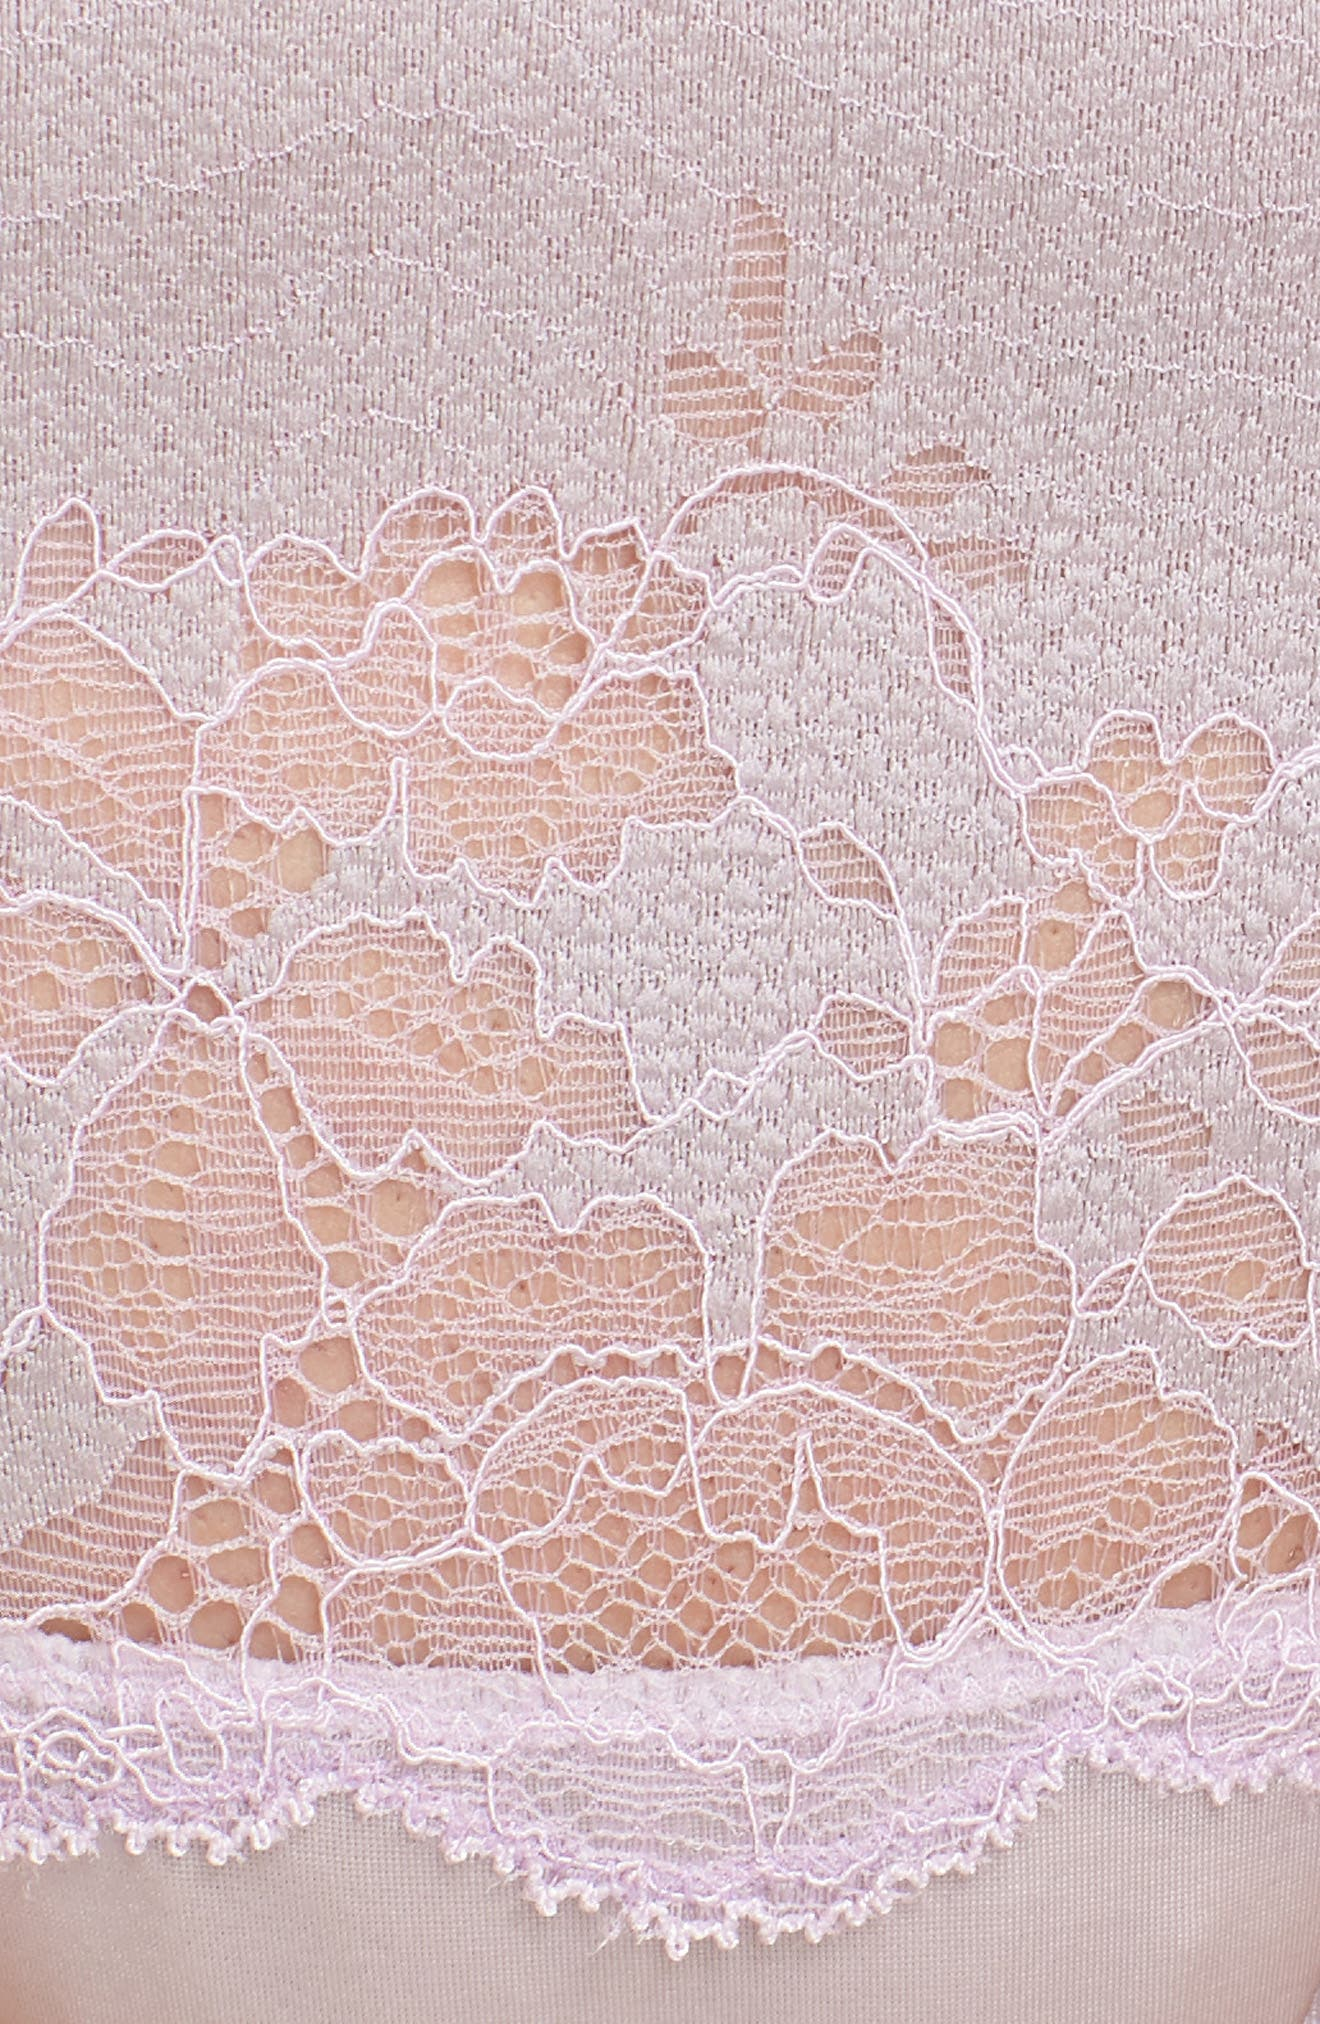 Lace Affair Tanga,                             Alternate thumbnail 5, color,                             LILAC MARBLE / PASTEL LILAC